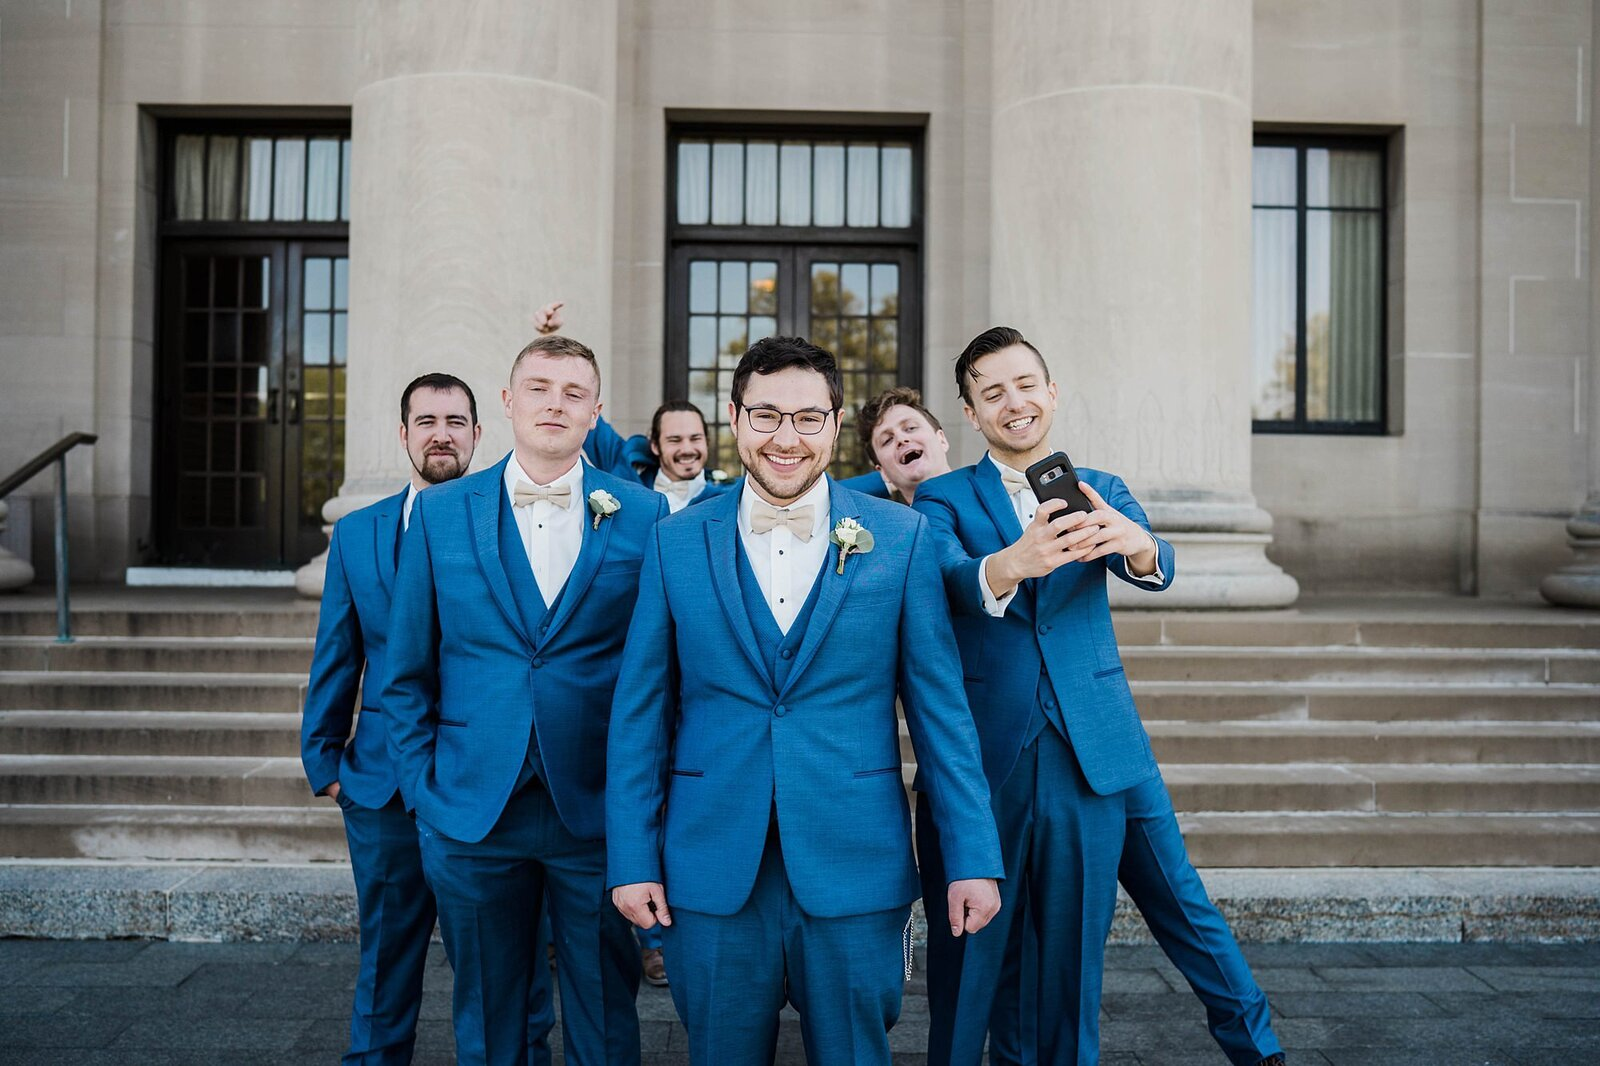 Groom and his groomsmen take a selfie in front of the nelson atkins